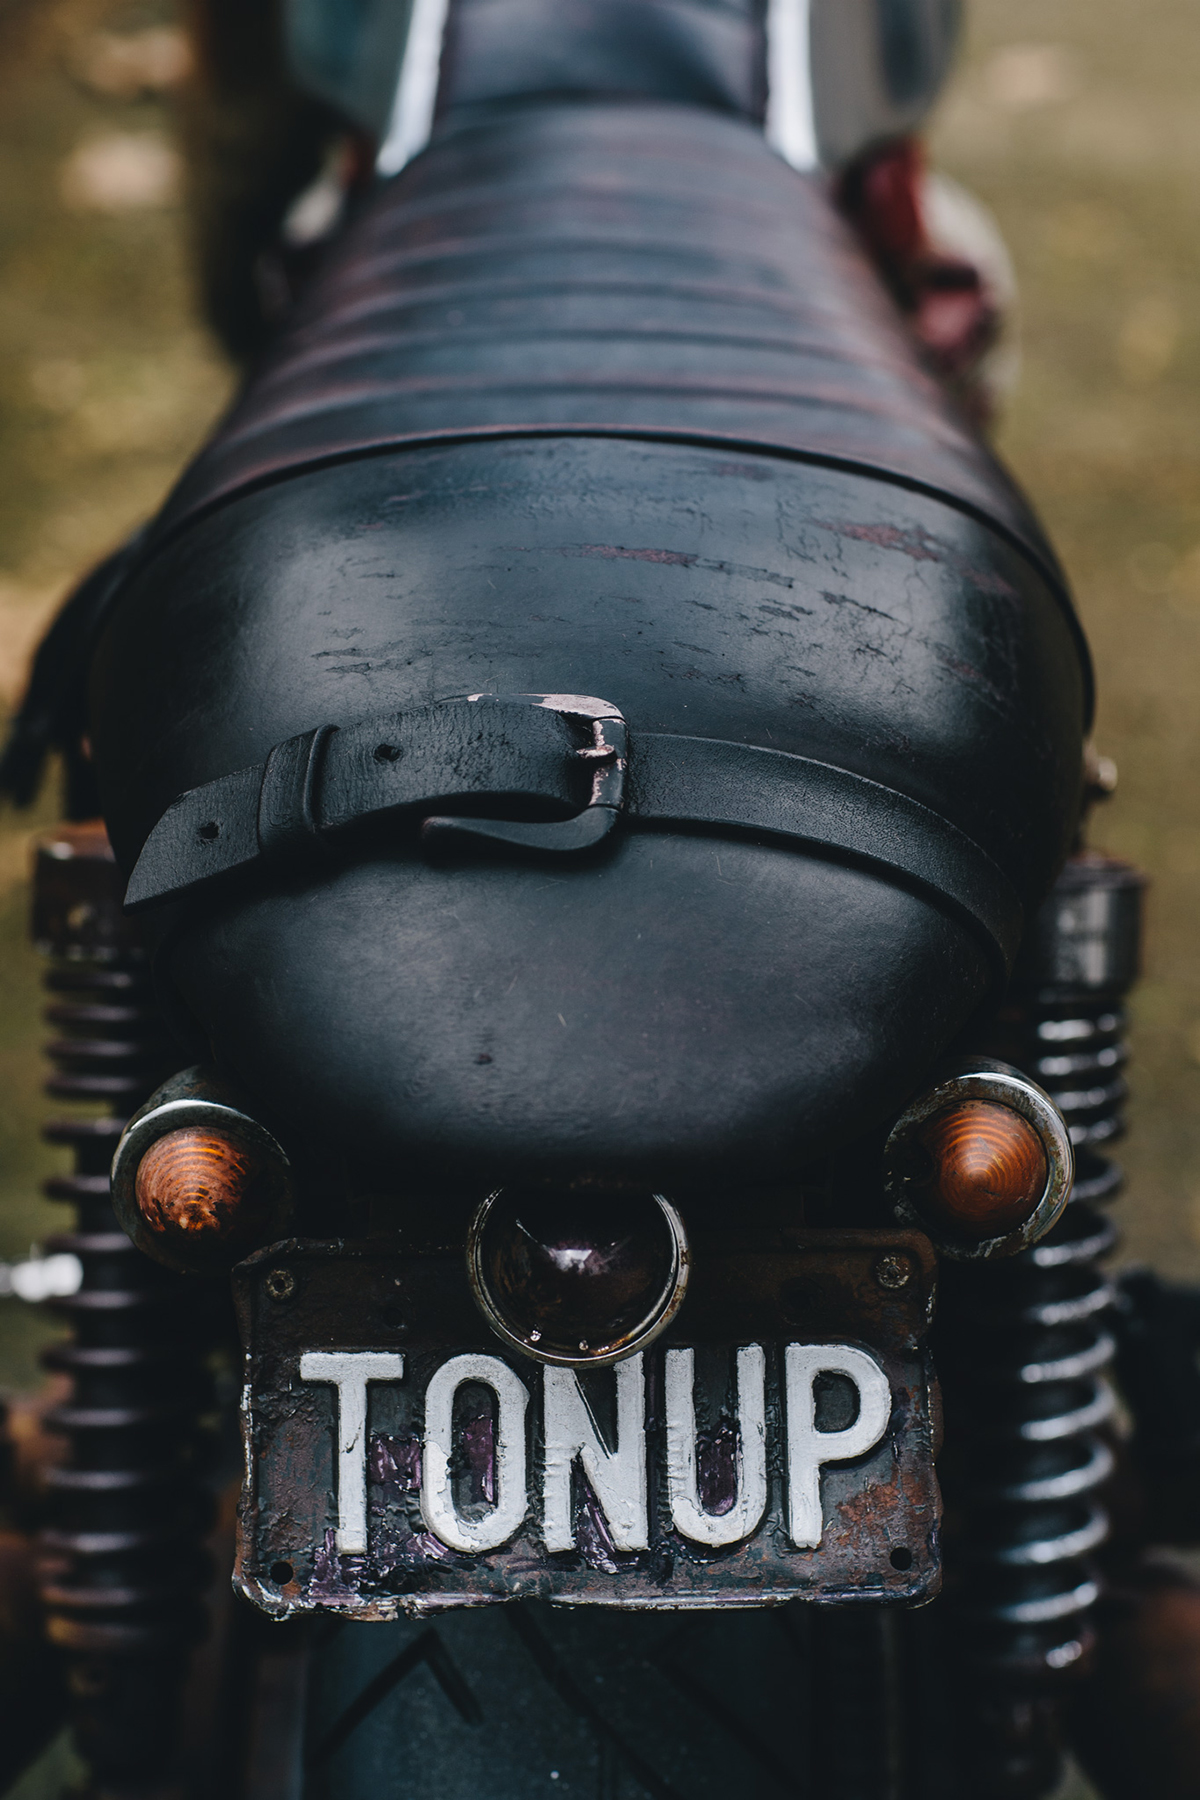 Triumph_Bonneville_Cafe_Racer_Rat_Bike_9319